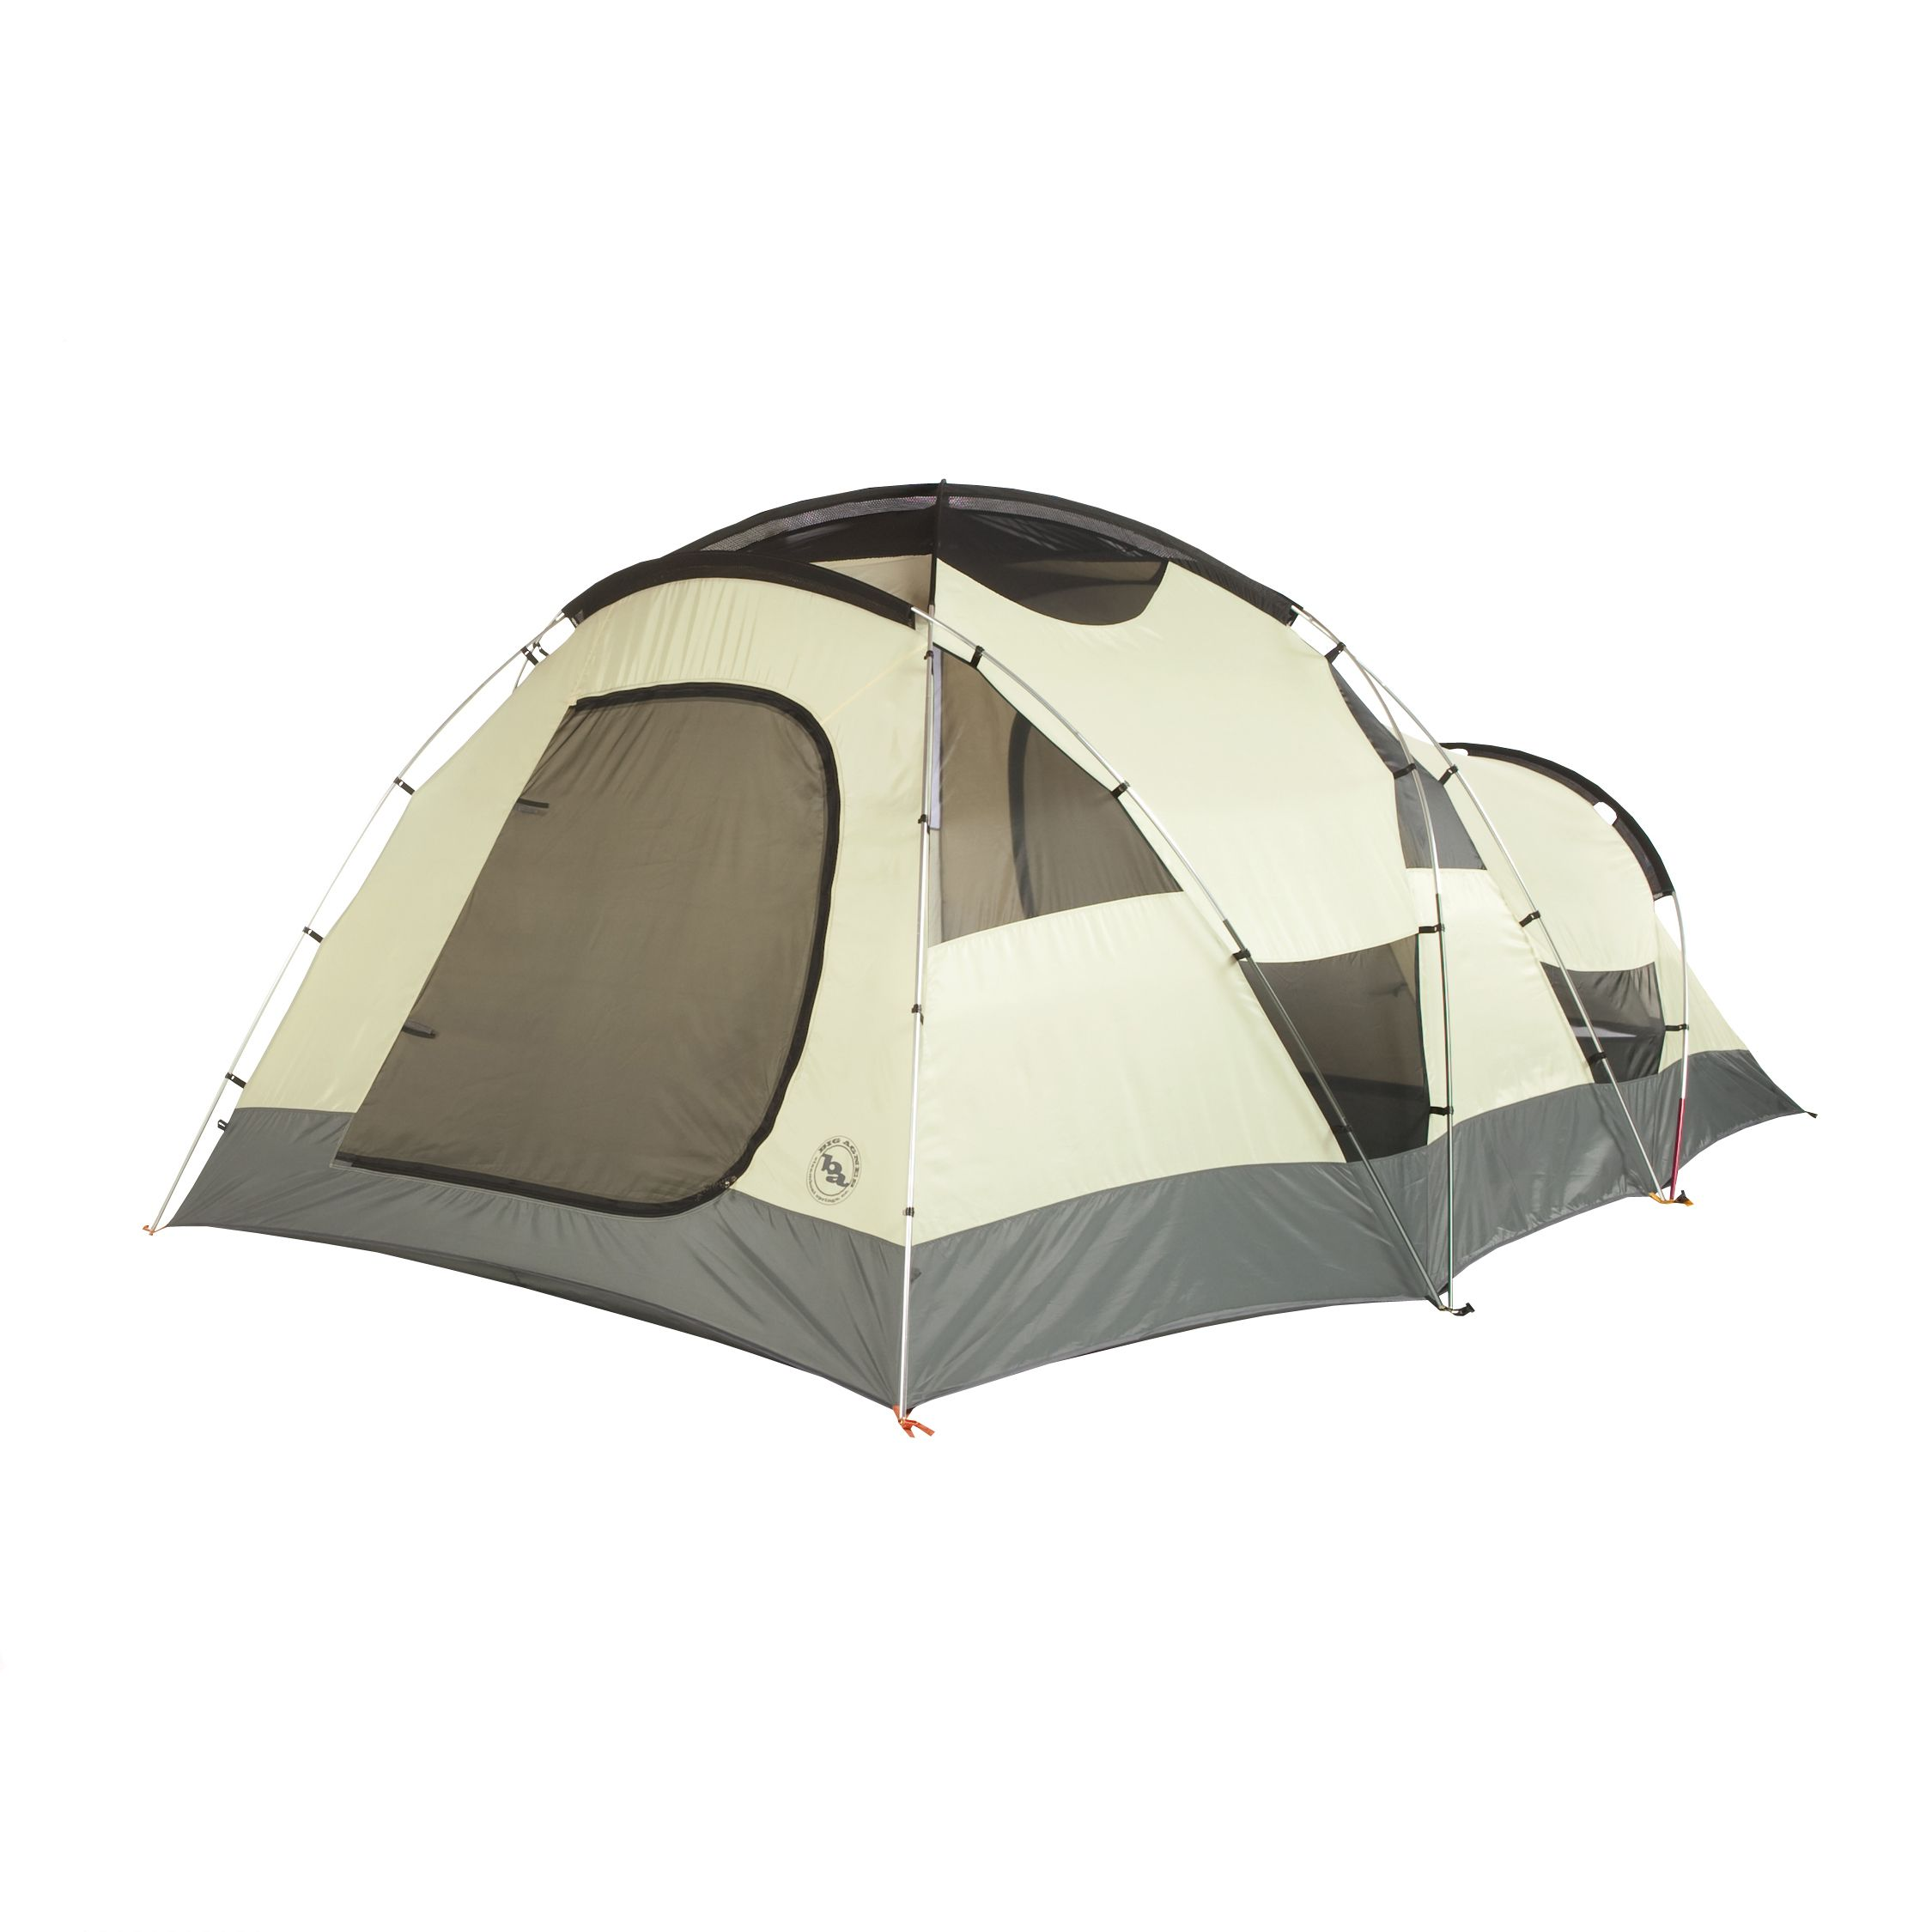 Big Agnes Flying Diamond 4 Season Tent 6 Person - Four season free standing  sc 1 st  Pinterest & Big Agnes Flying Diamond 4 Season Tent 6 Person - Four season ...